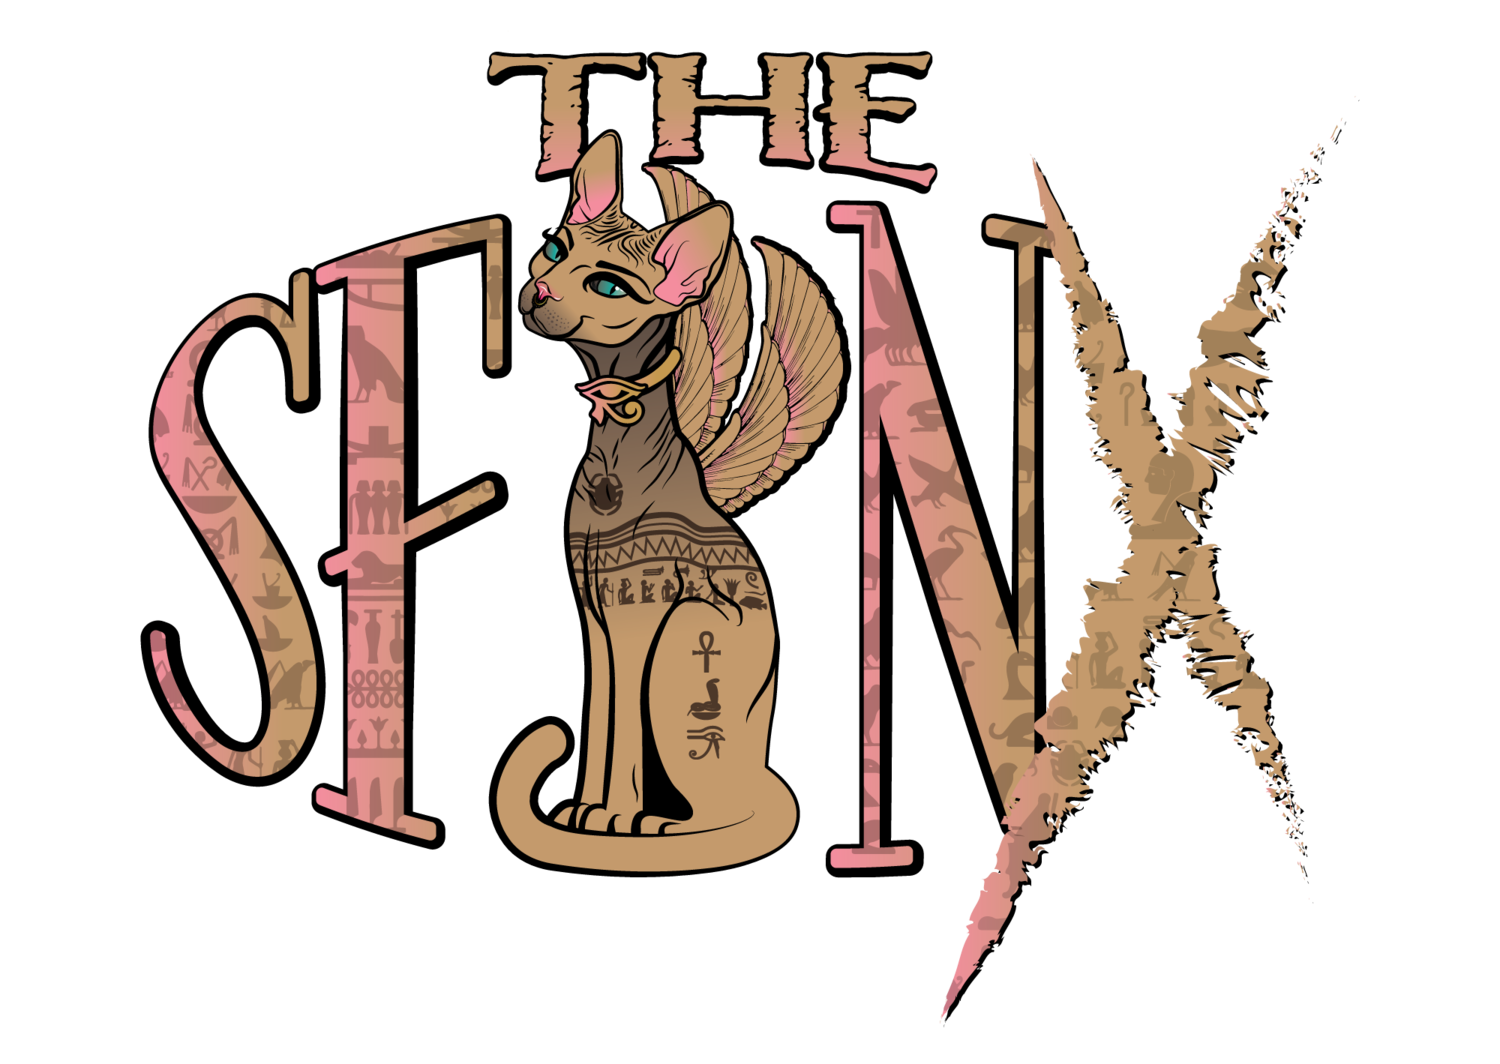 The Sfinx